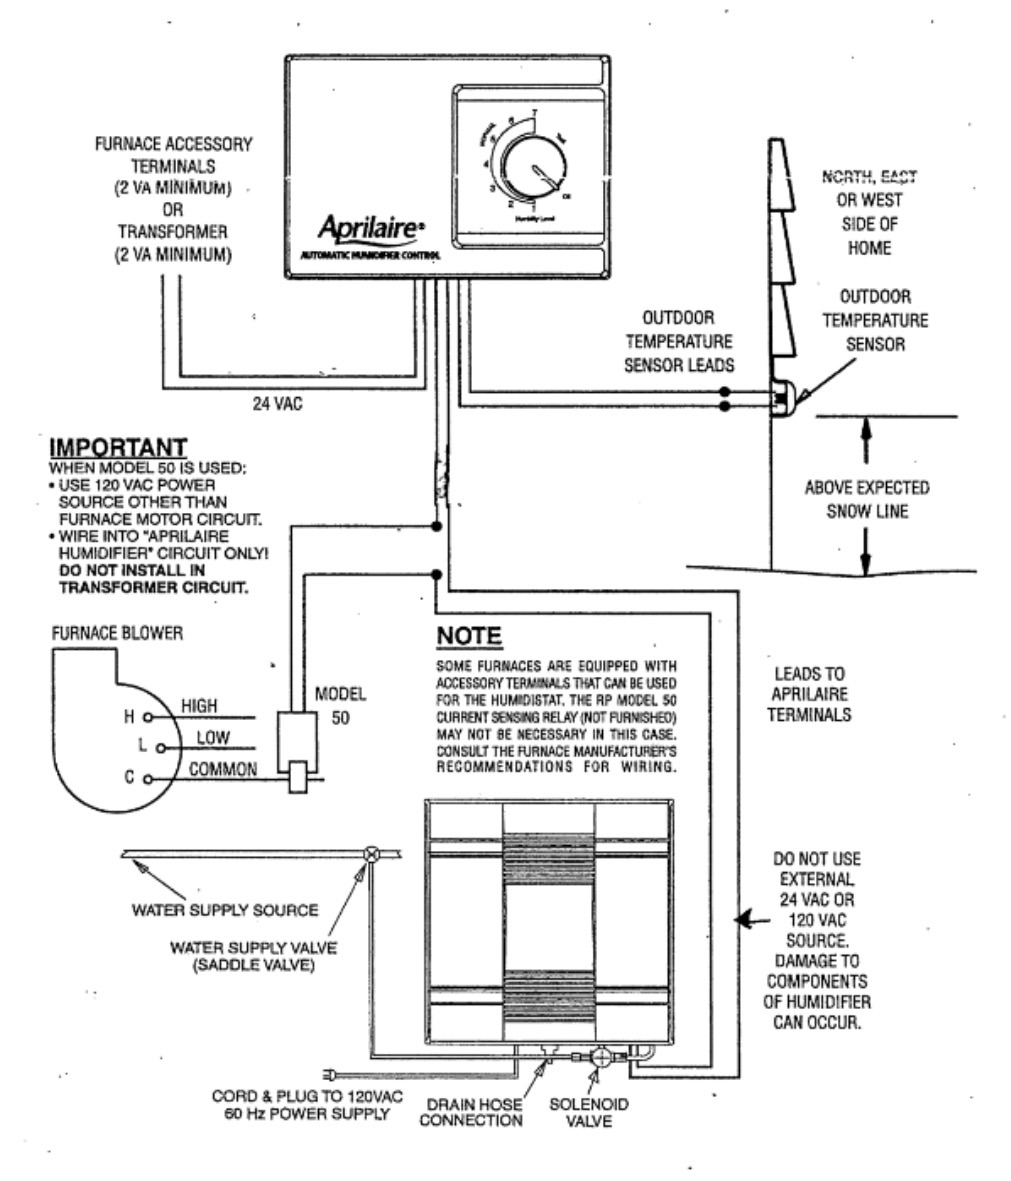 aprilaire 56 humidistat wiring diagram Download-aprilaire humidifier wiring diagram image wiring diagram collection rh galericanna Aprilaire 500 Wiring Diagram Aprilaire 2-o